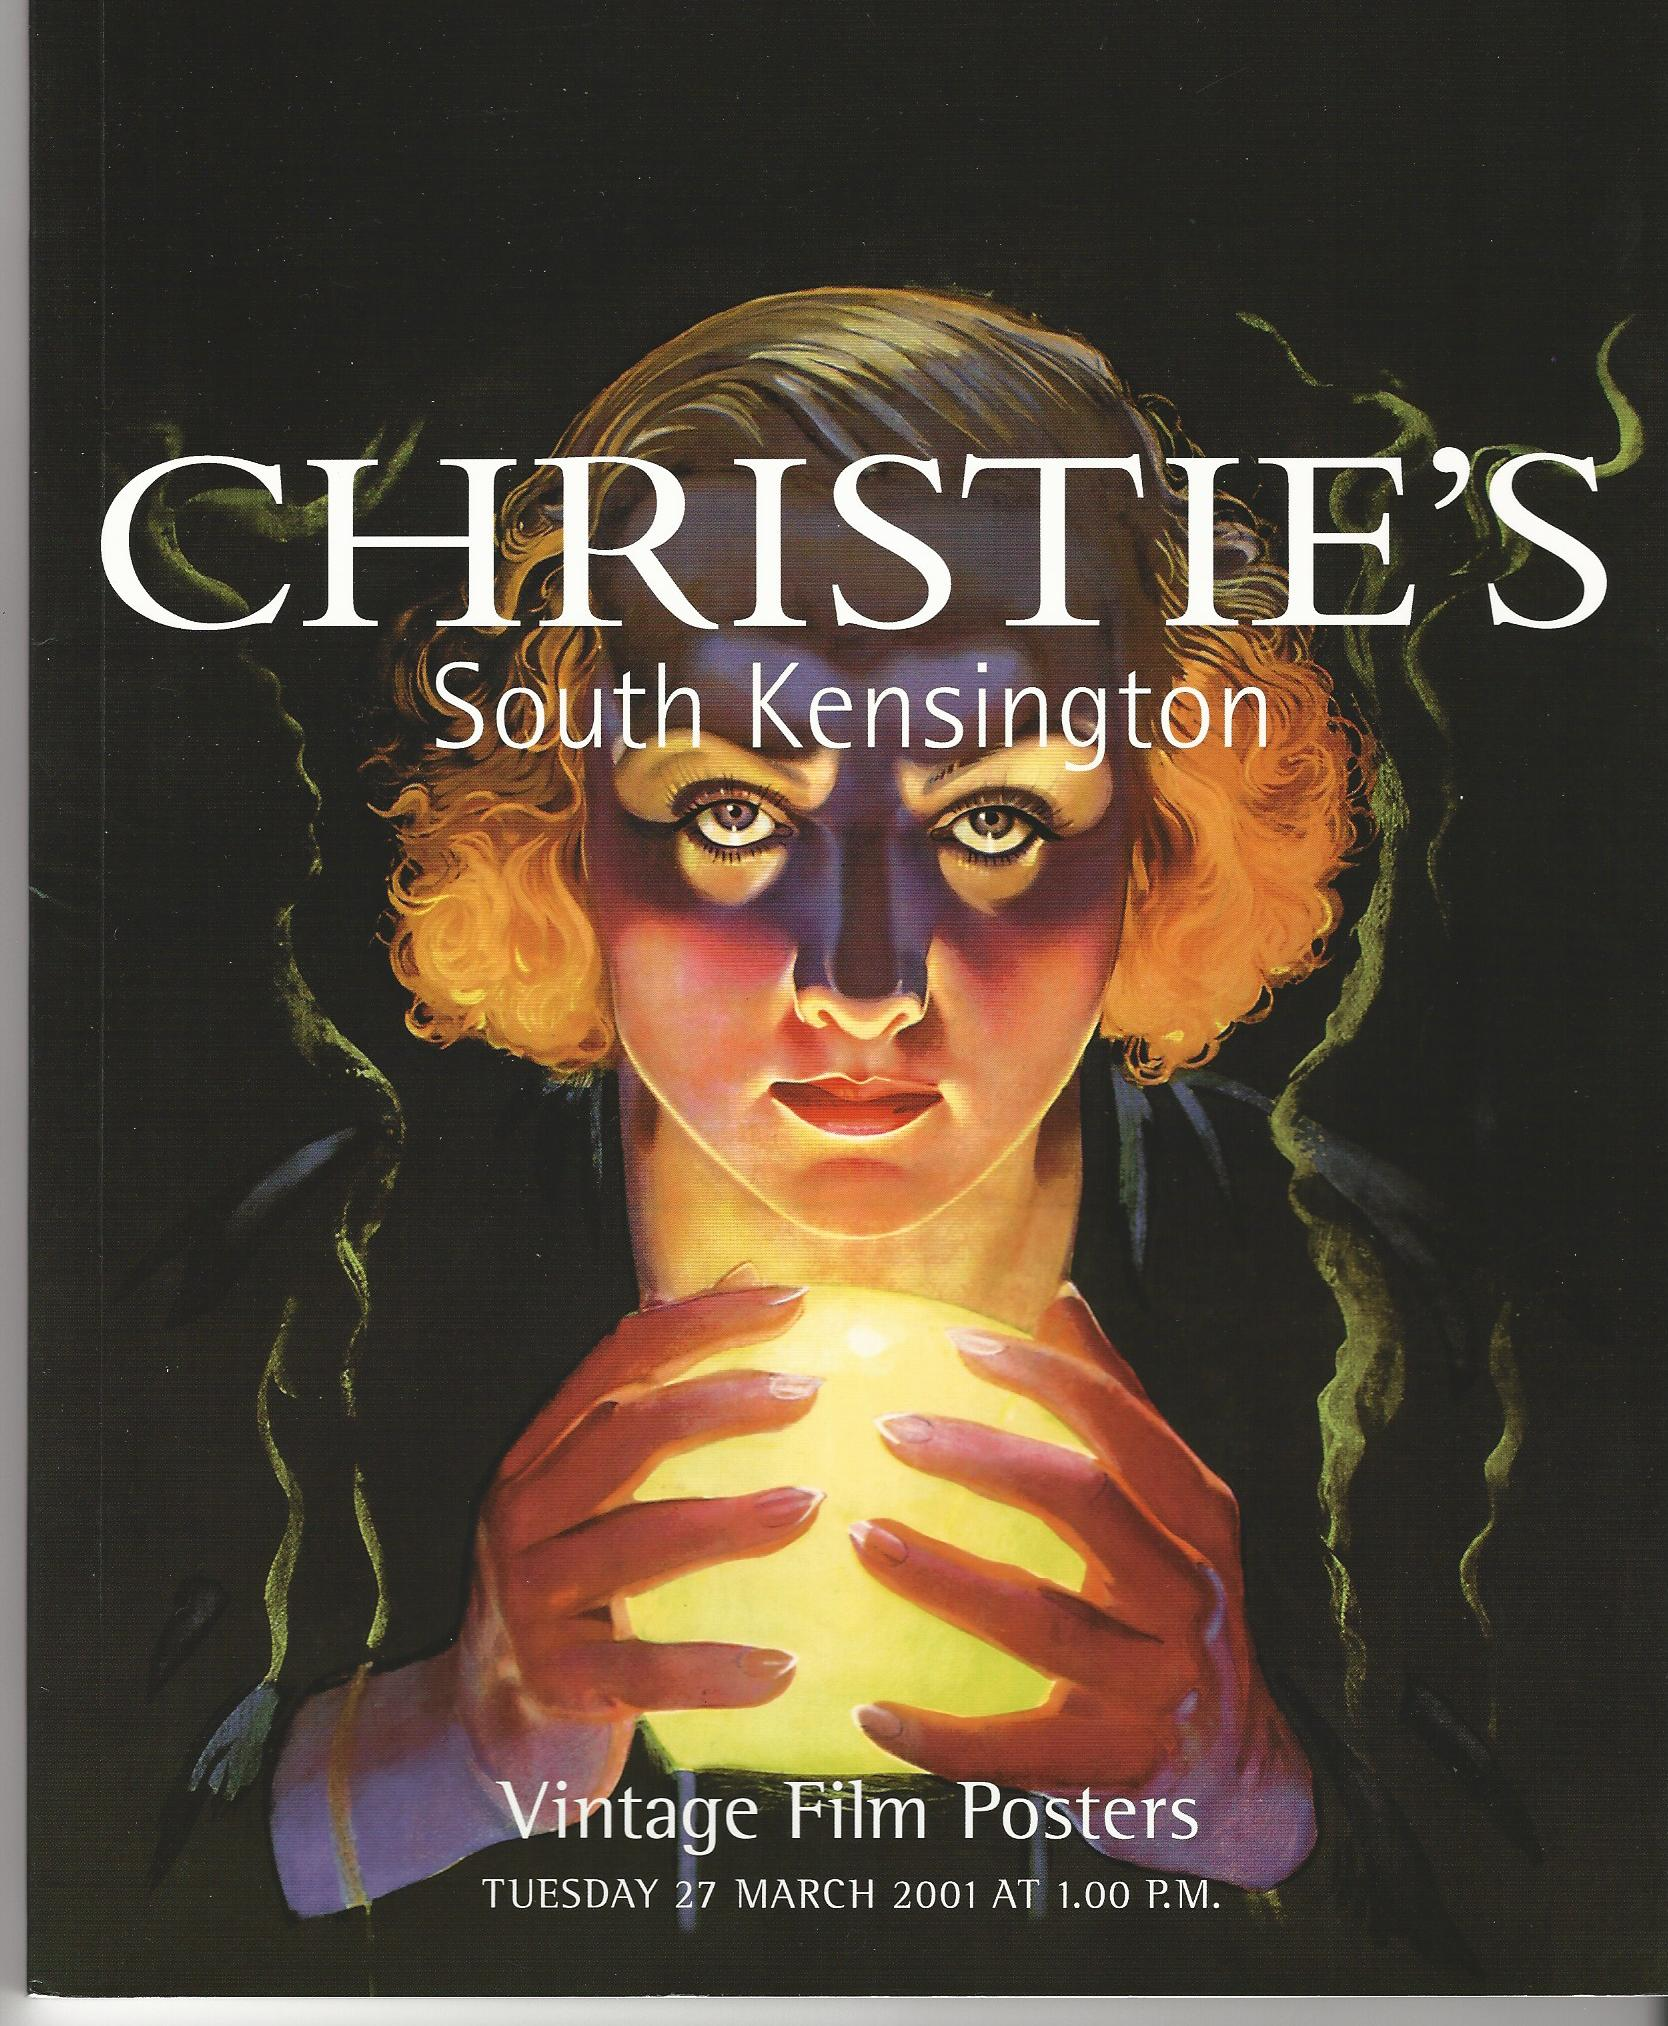 Image for Christie's South Kensington Vintage Film Posters, 27 March 2001.